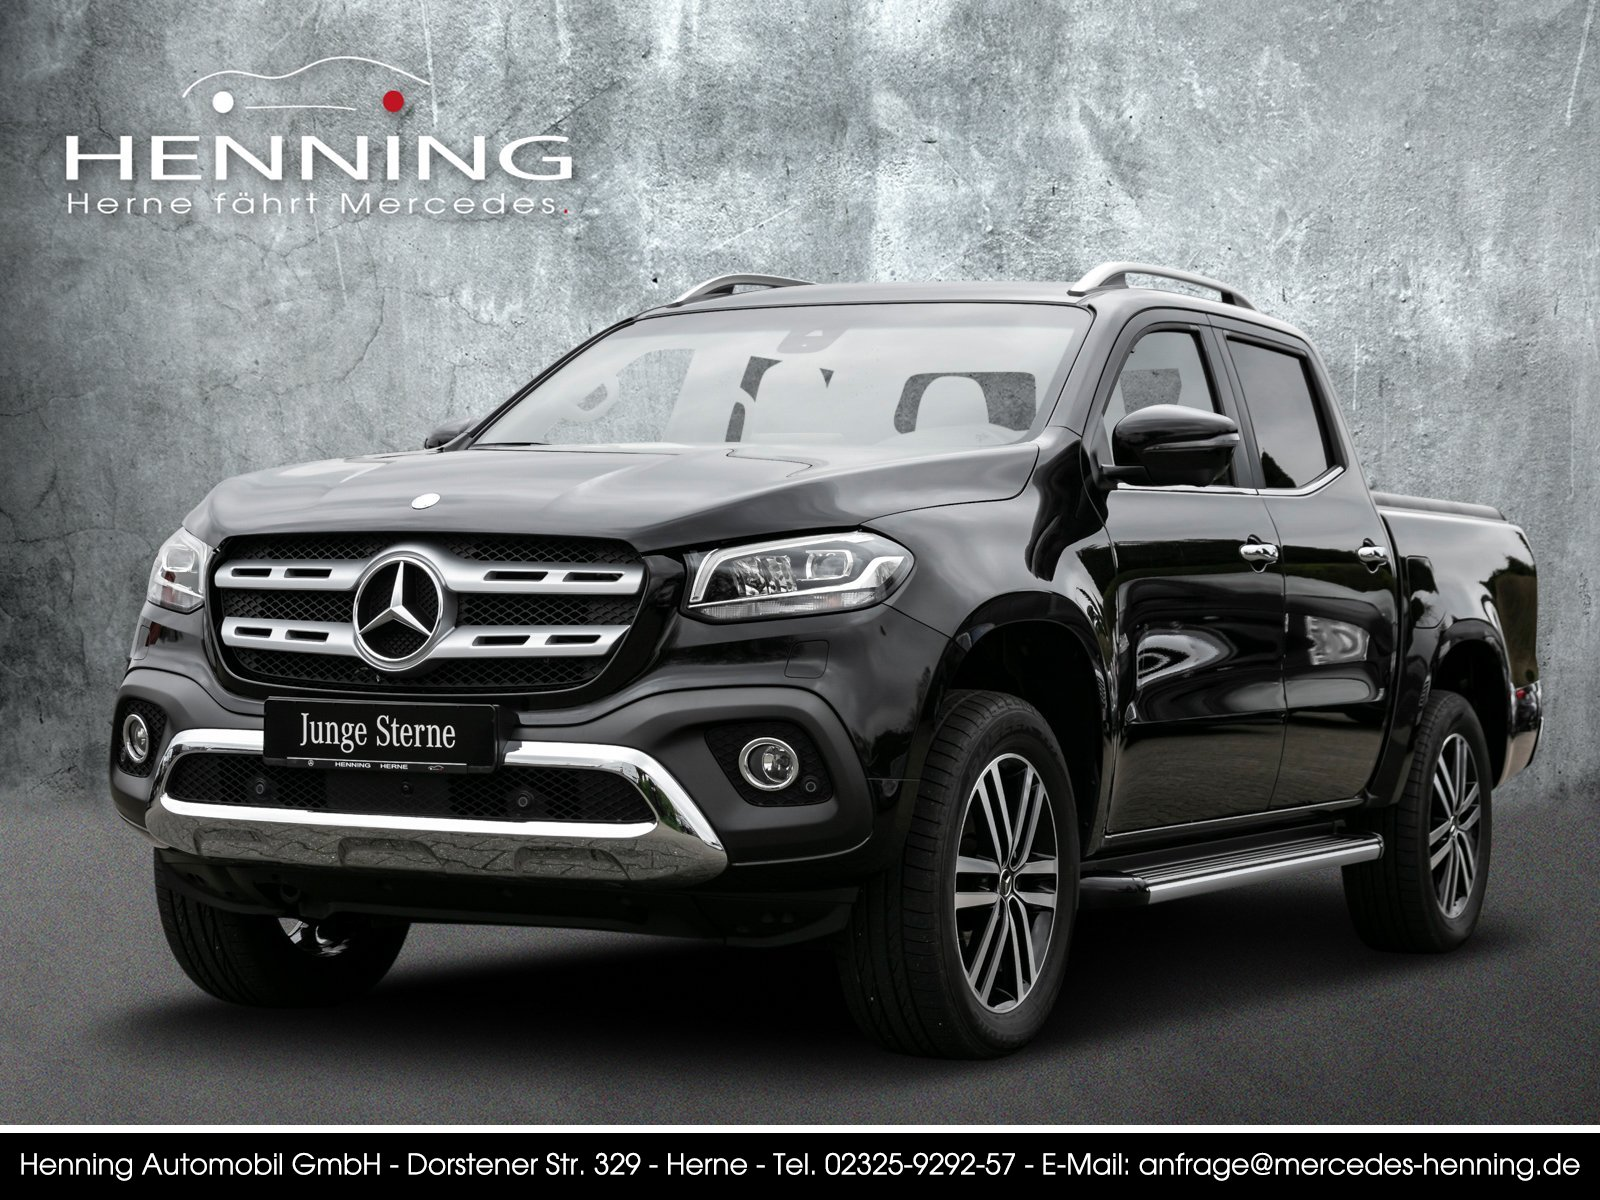 MERCEDES-BENZ 250 X d 4MATIC POWER EDITION